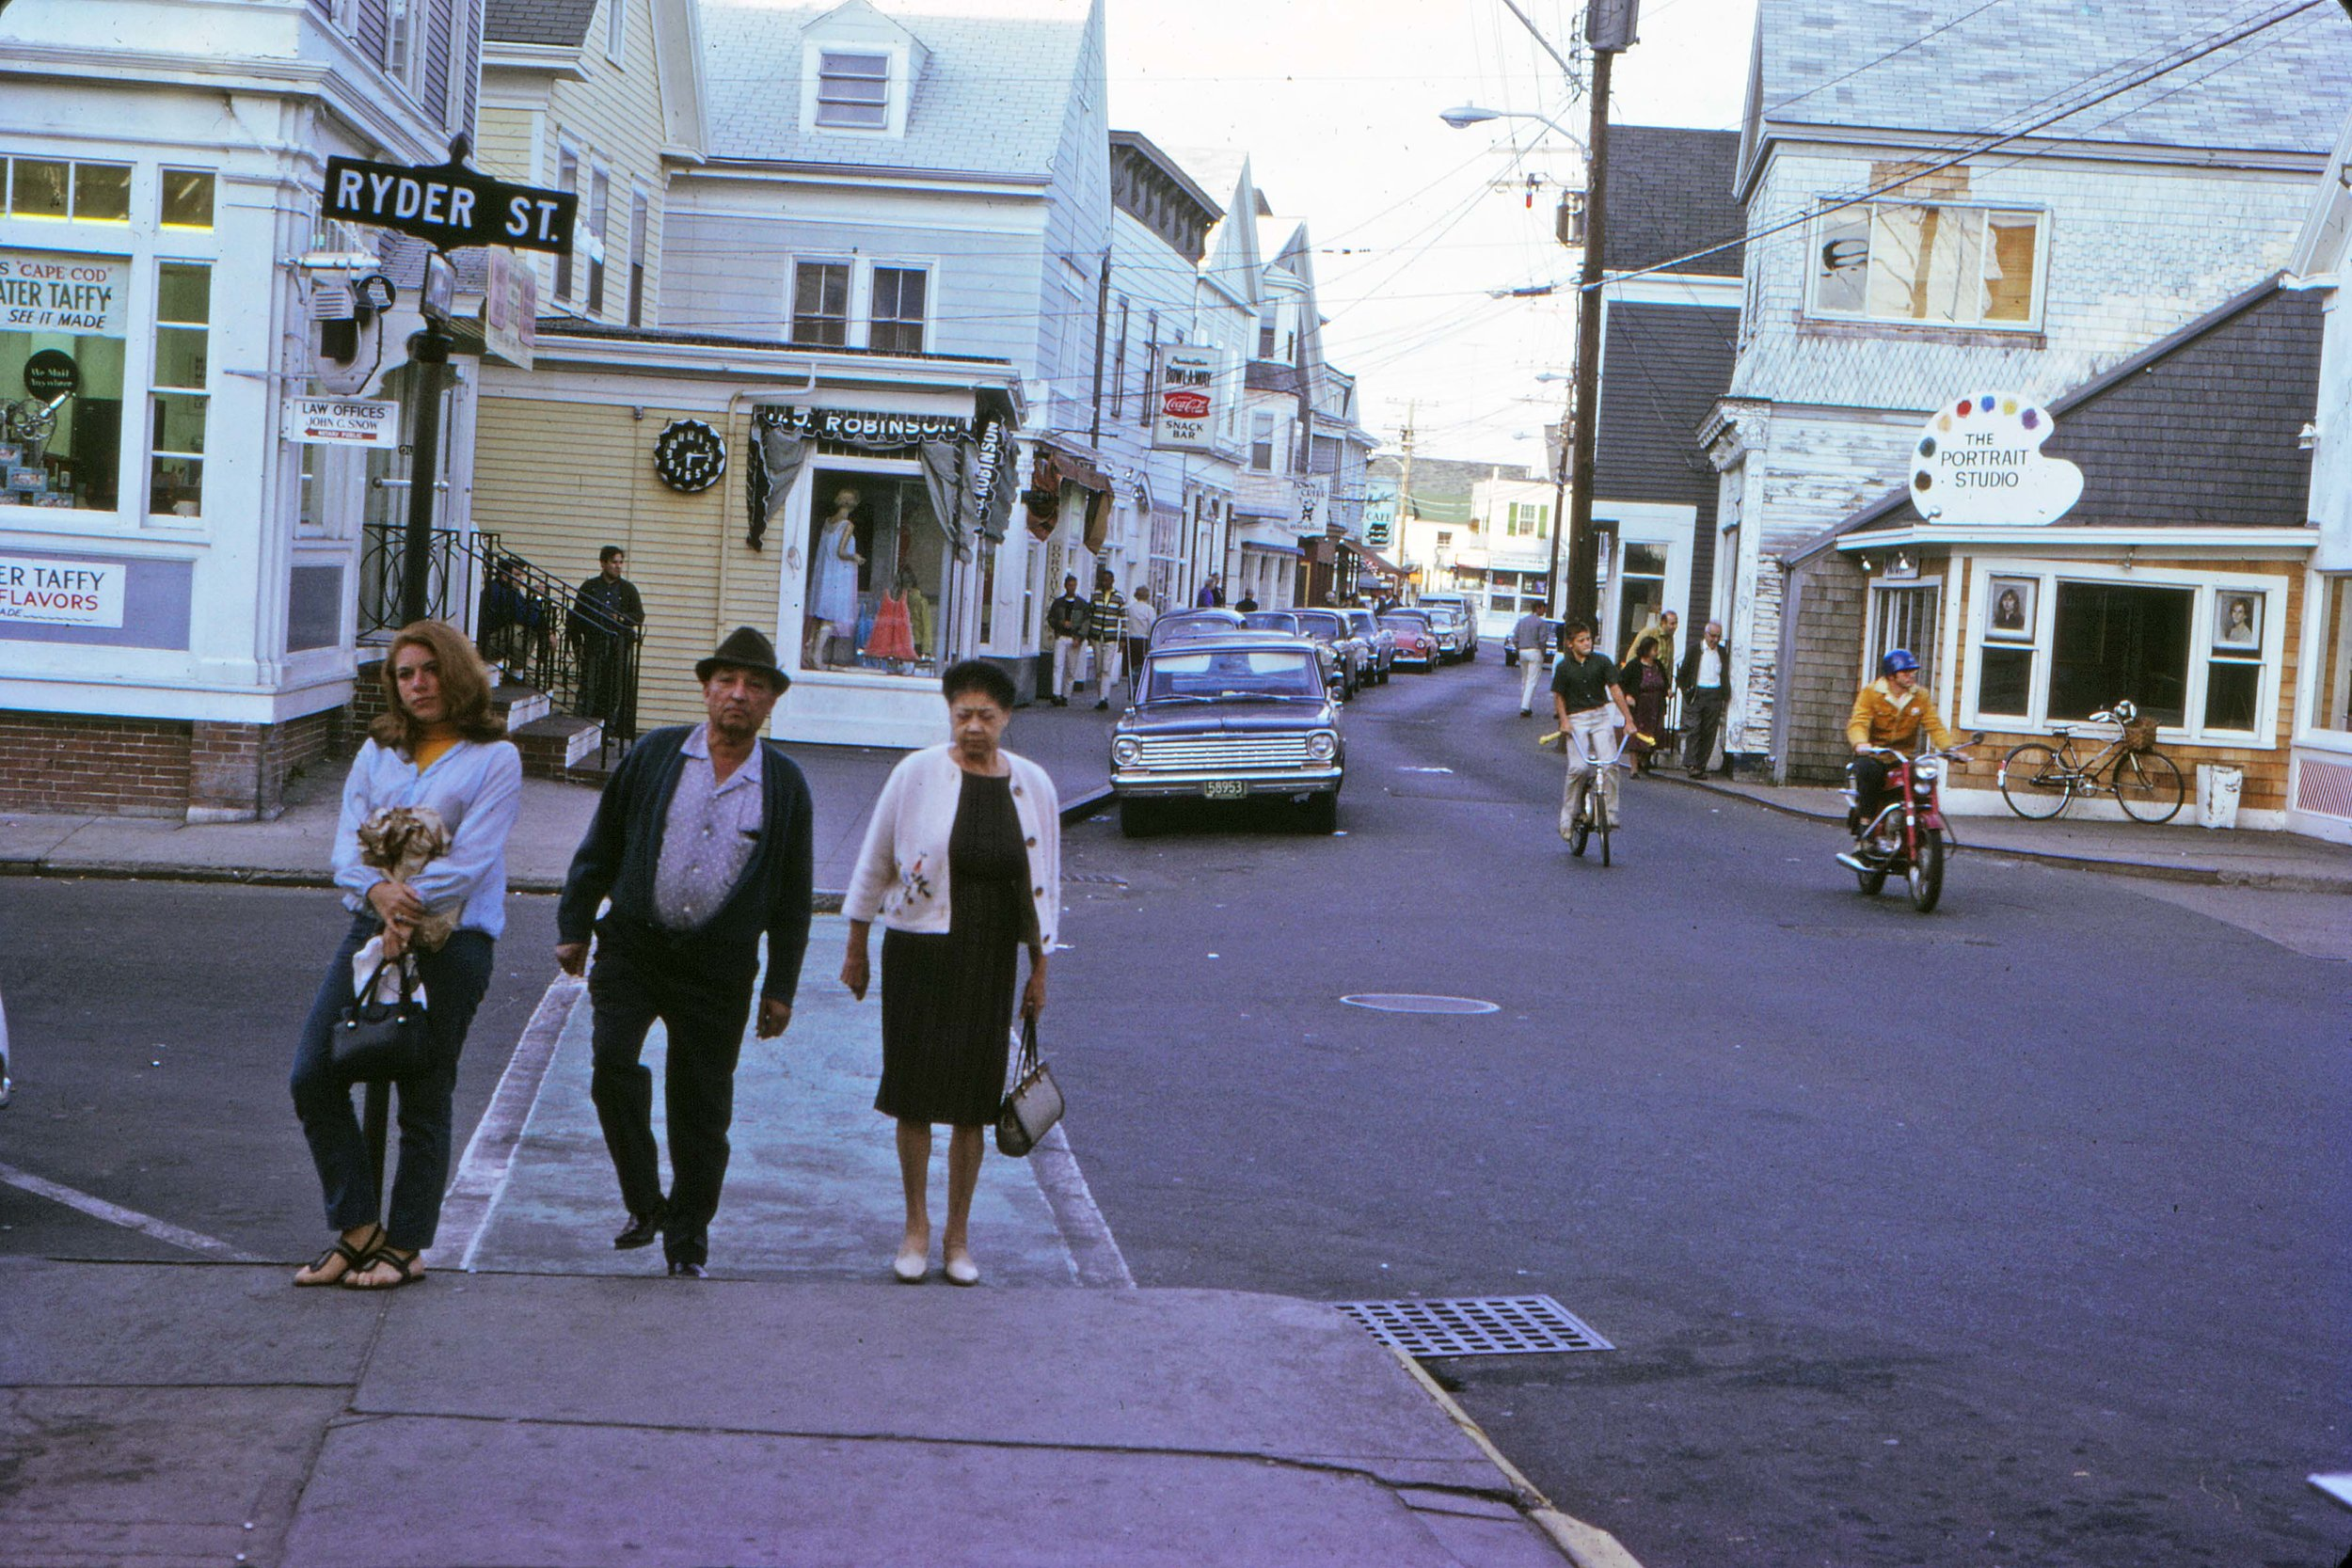 Commercial Street at Ryder Street in 1967.